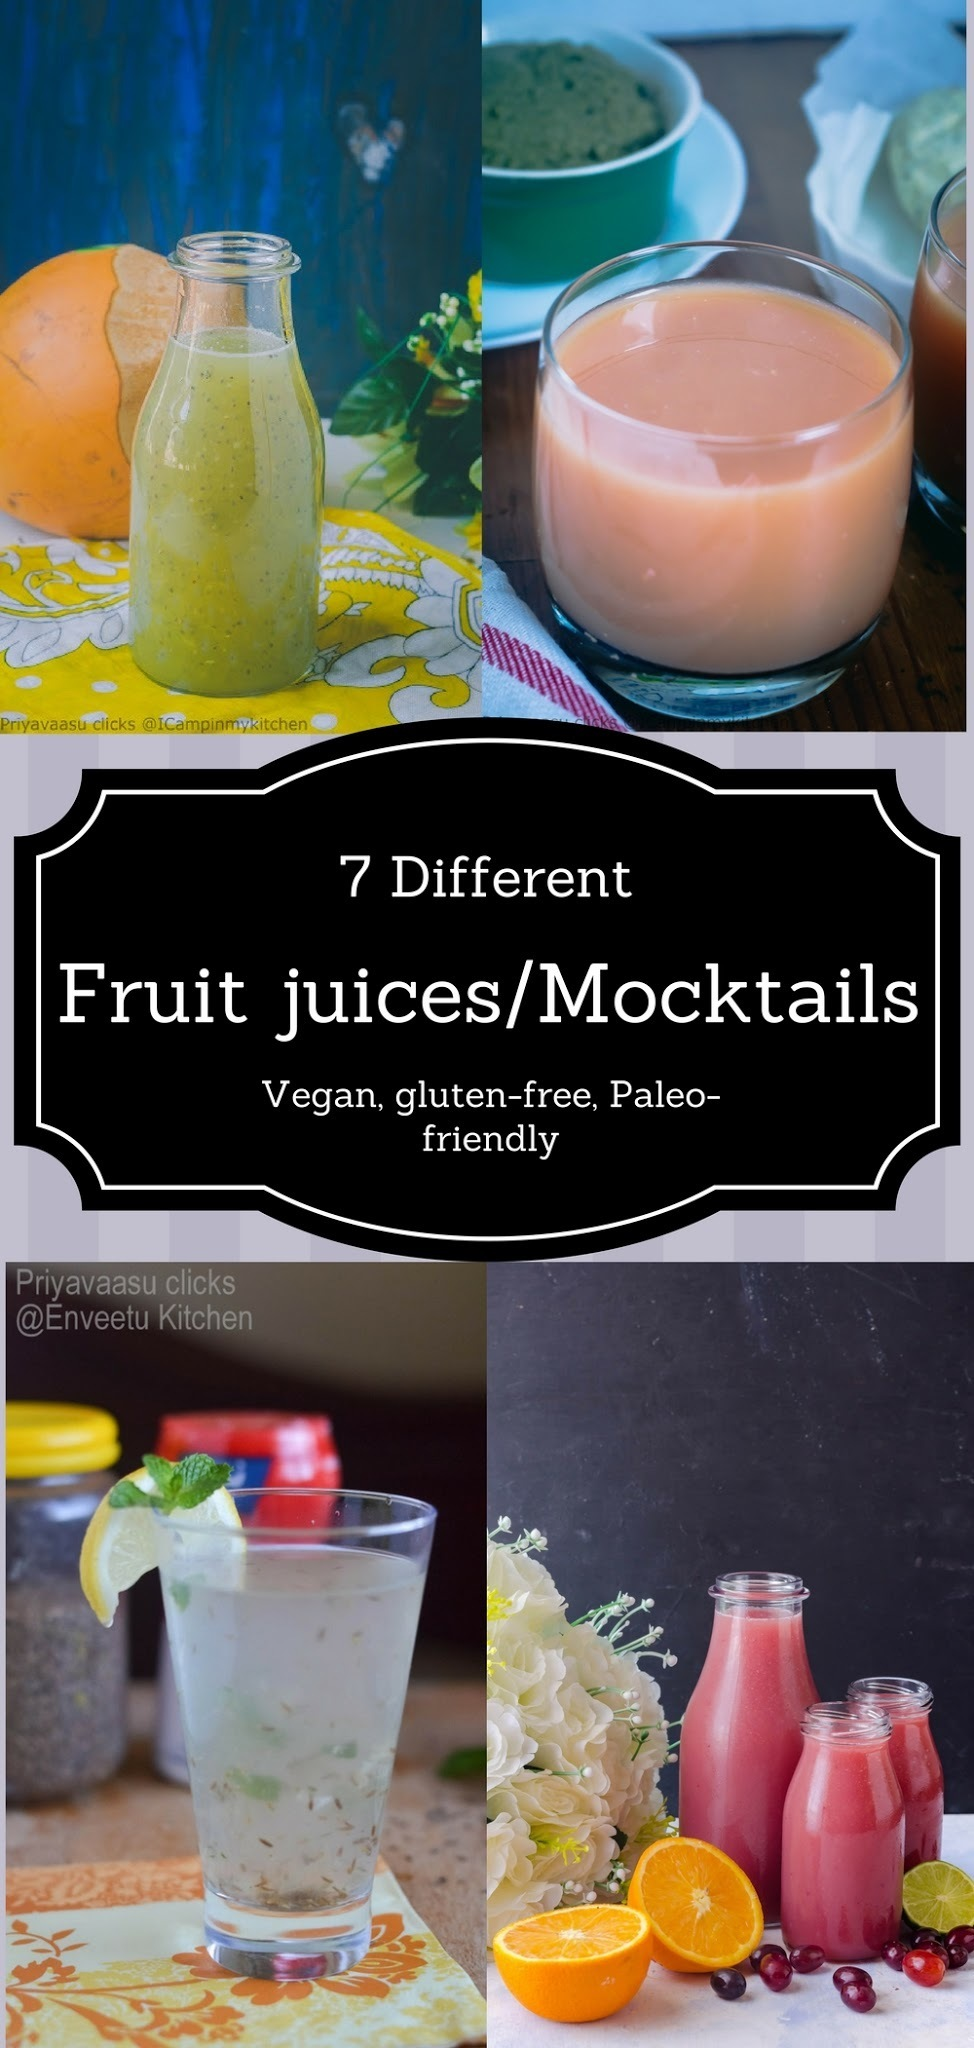 7 Fresh juices/Mocktails to keep you hydrated this summer